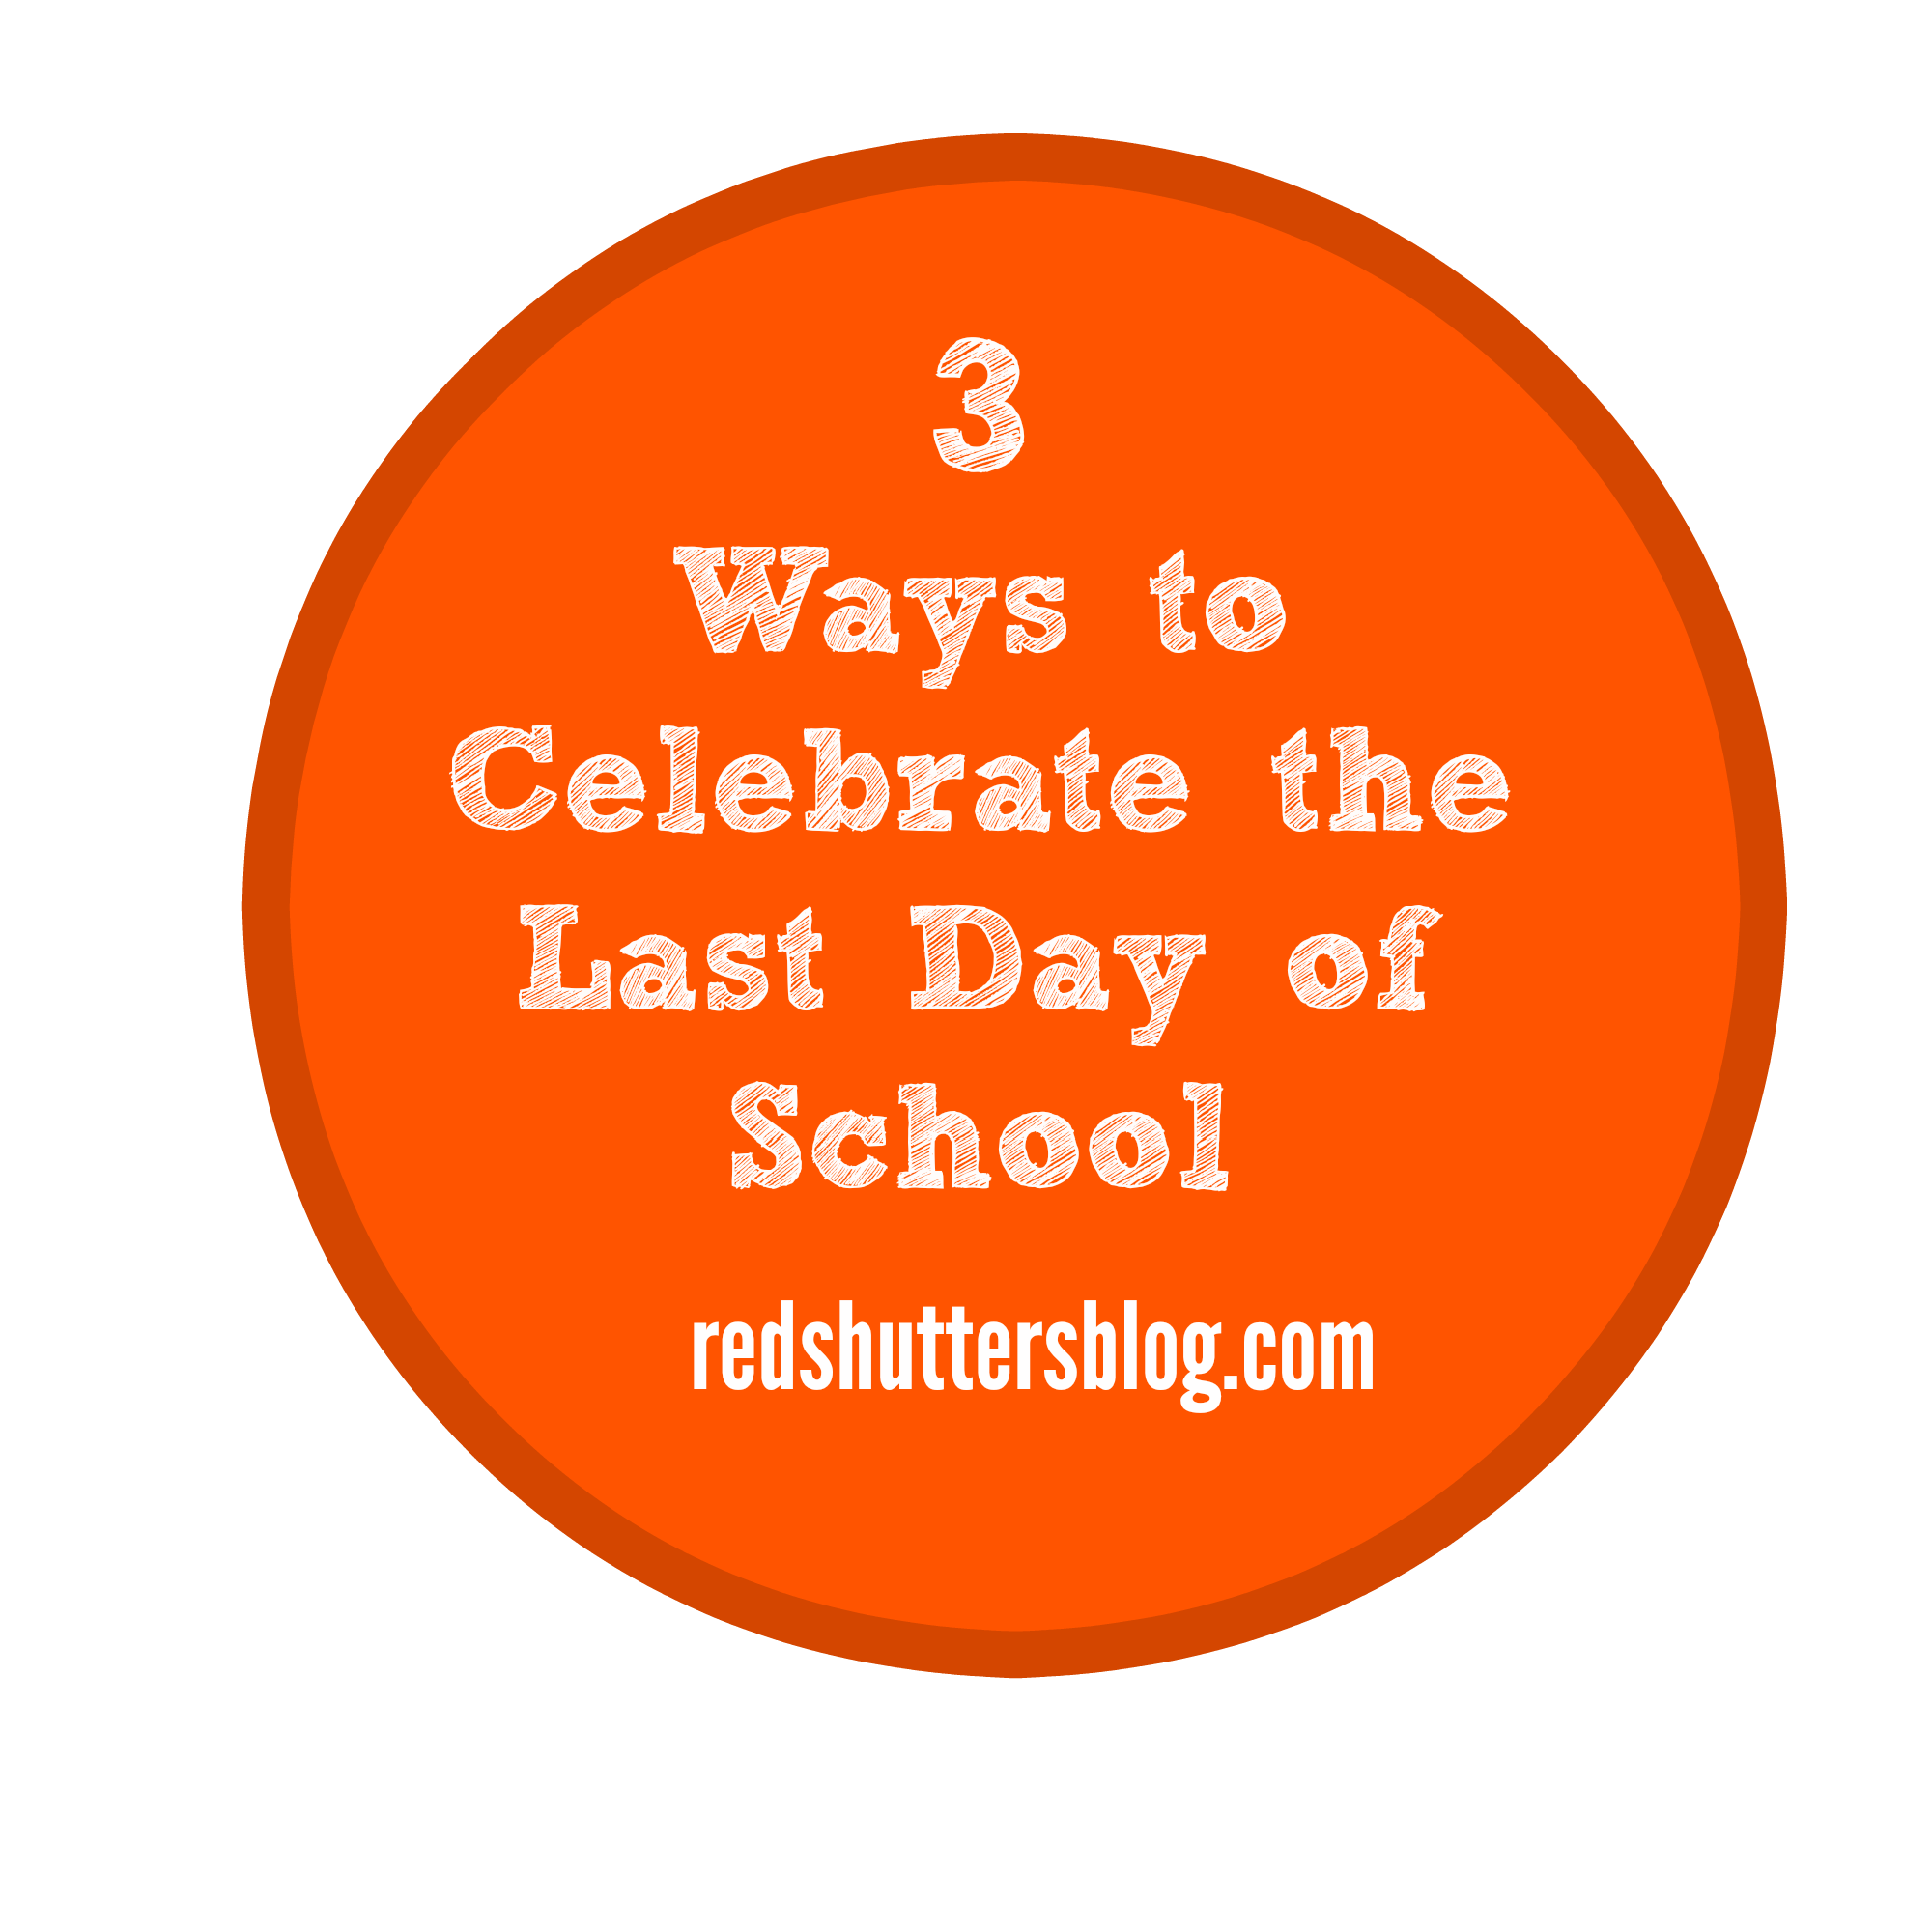 3 ways to celebrate the last day of school